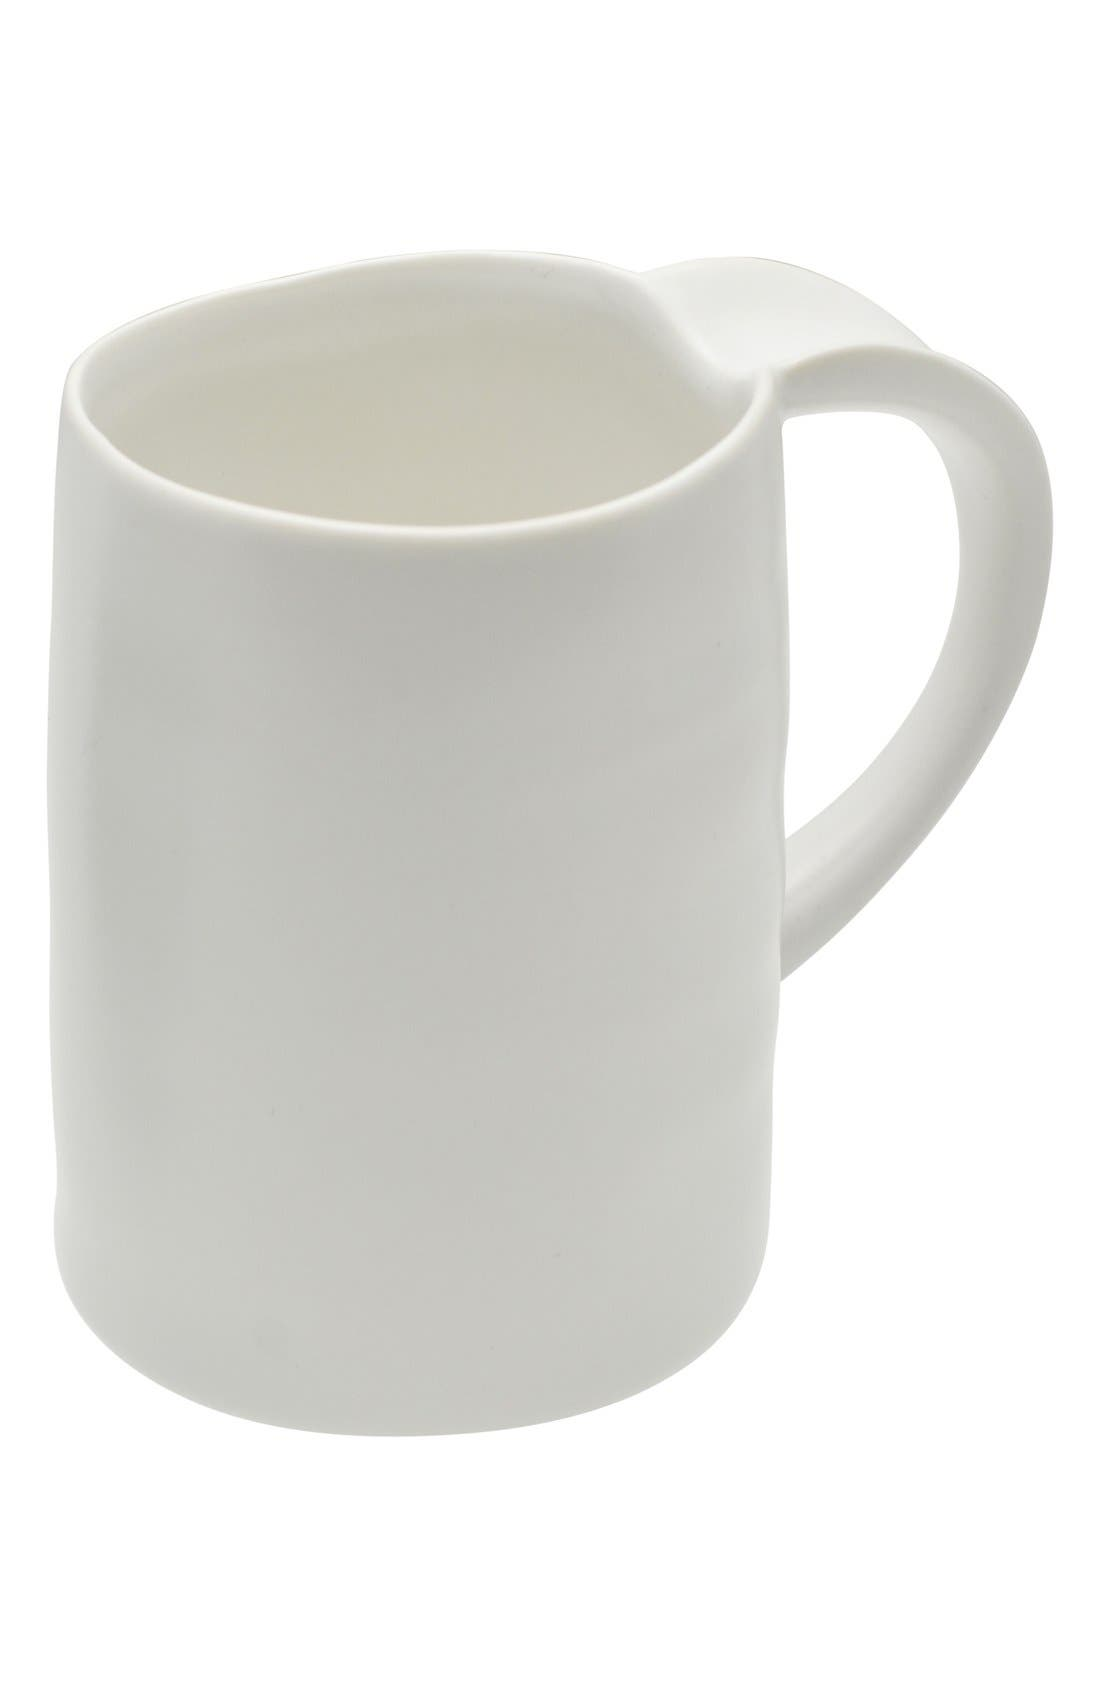 10 STRAWBERRY STREET 'Ripple' Porcelain Mugs